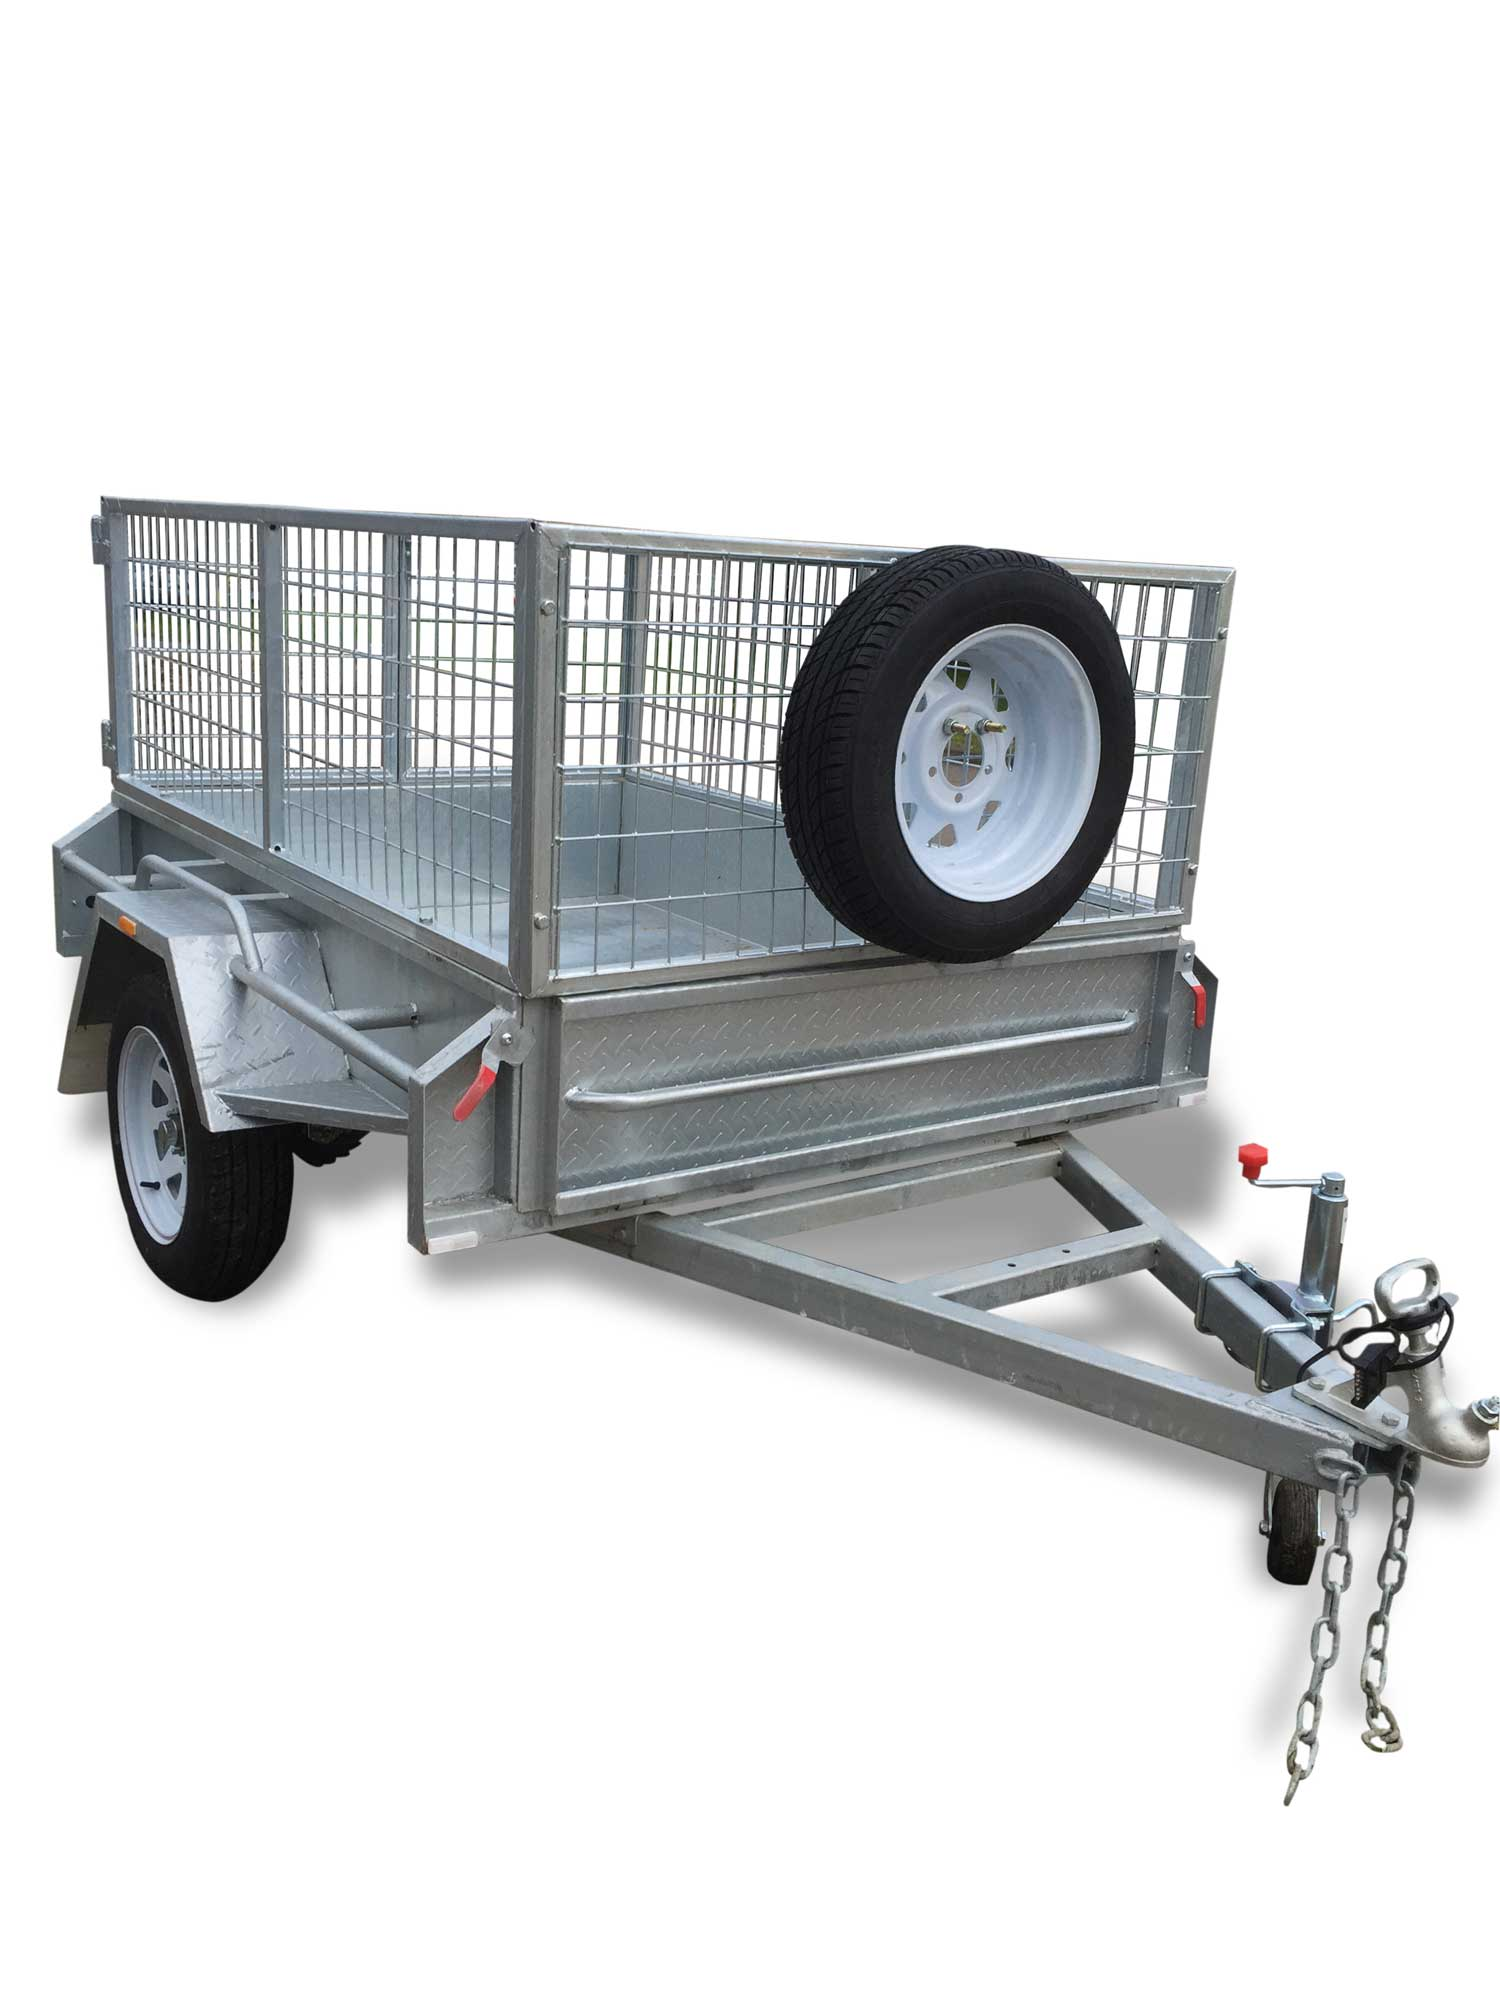 Wiring Diagram For Carry On Trailer : Carry on enclosed trailer wiring diagram